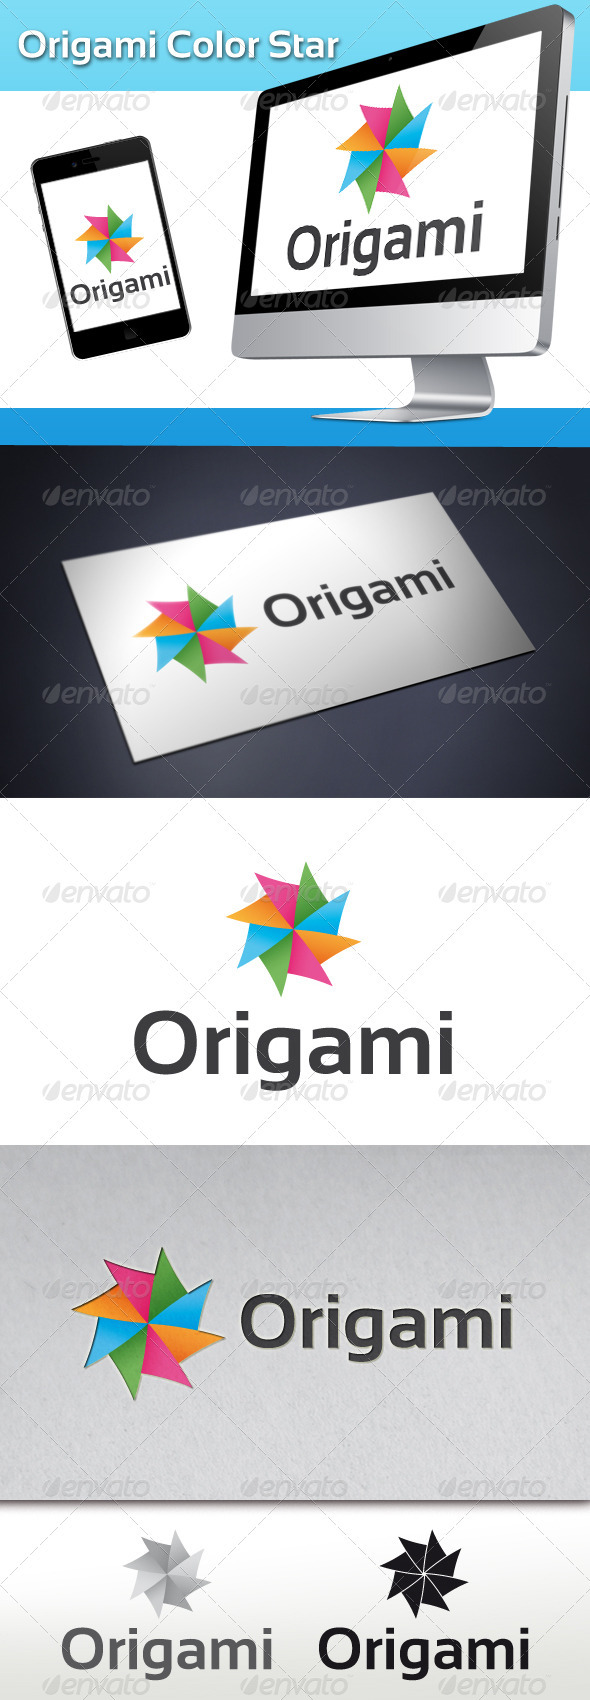 GraphicRiver Origami Color Star Logo 3507463